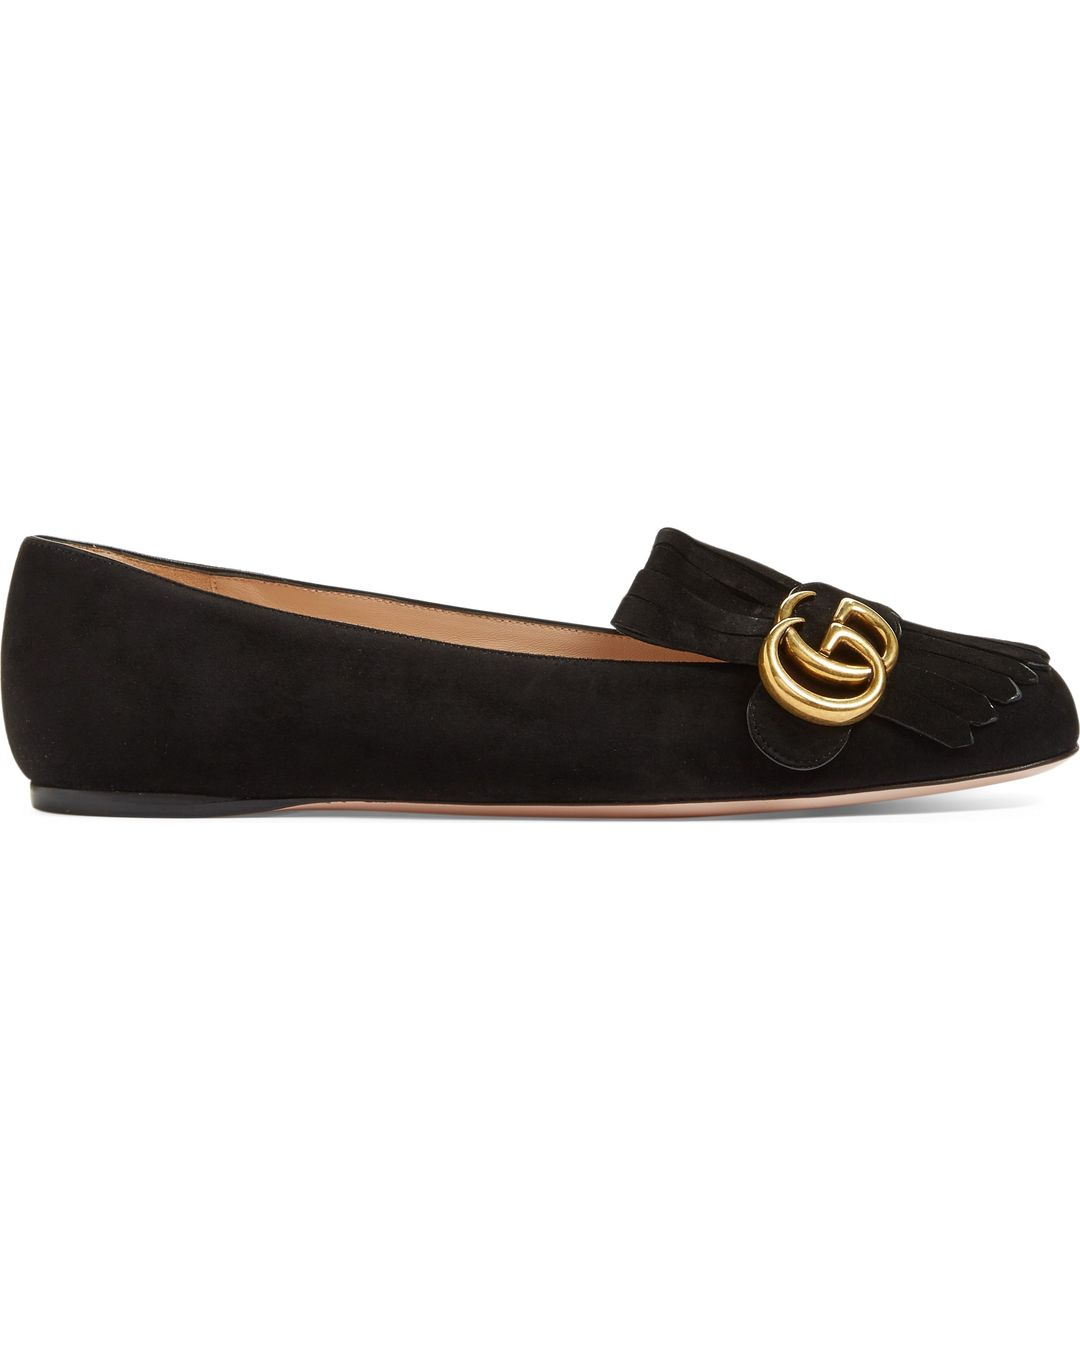 Gucci Marmont Flats Reviews and Sizing